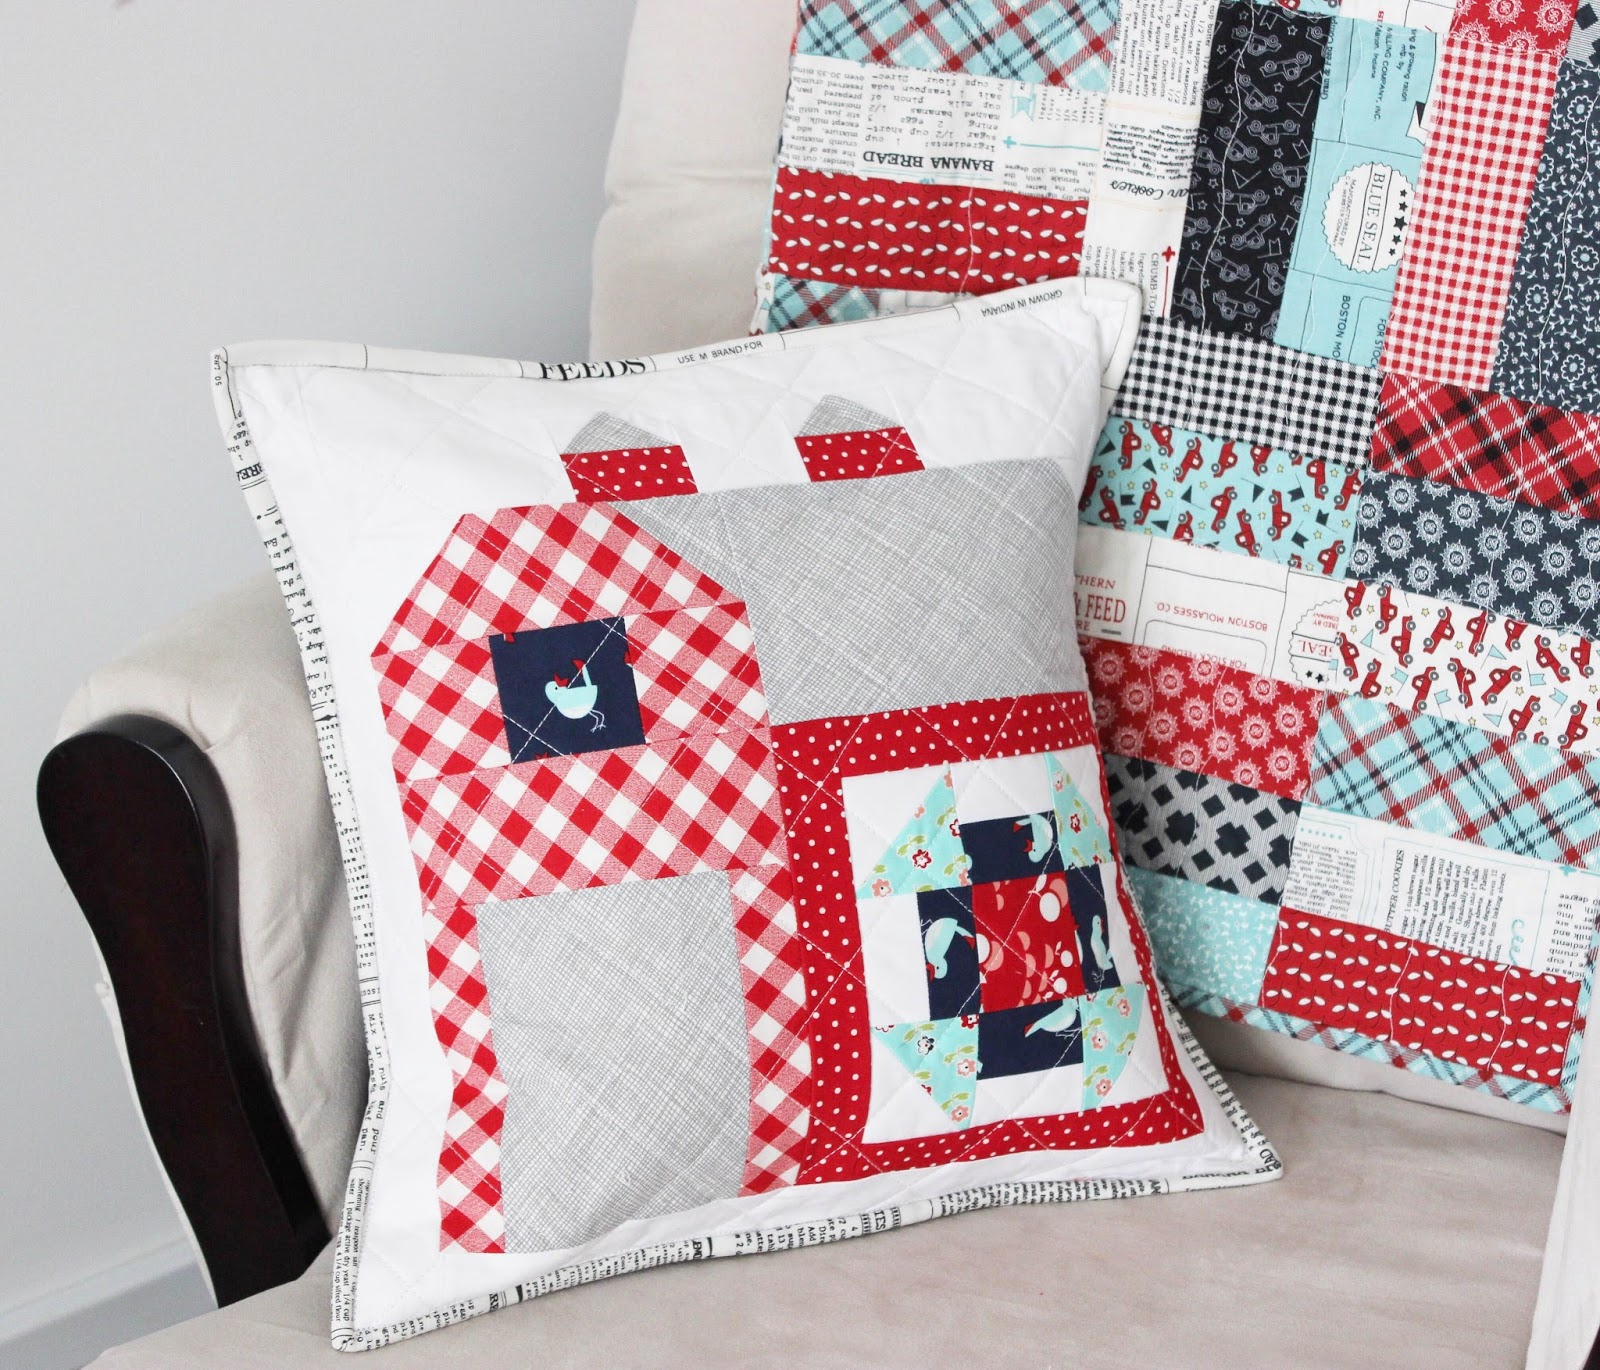 Fabrics: I used various Bonnie and Camille prints from the Vintage Picnic line for the blocks and backing mixed with a little Widescreen in grey from ... & Farmgirl Vintage Quilted Pillow Cover + Tutorial - Hilltop Custom ... pillowsntoast.com